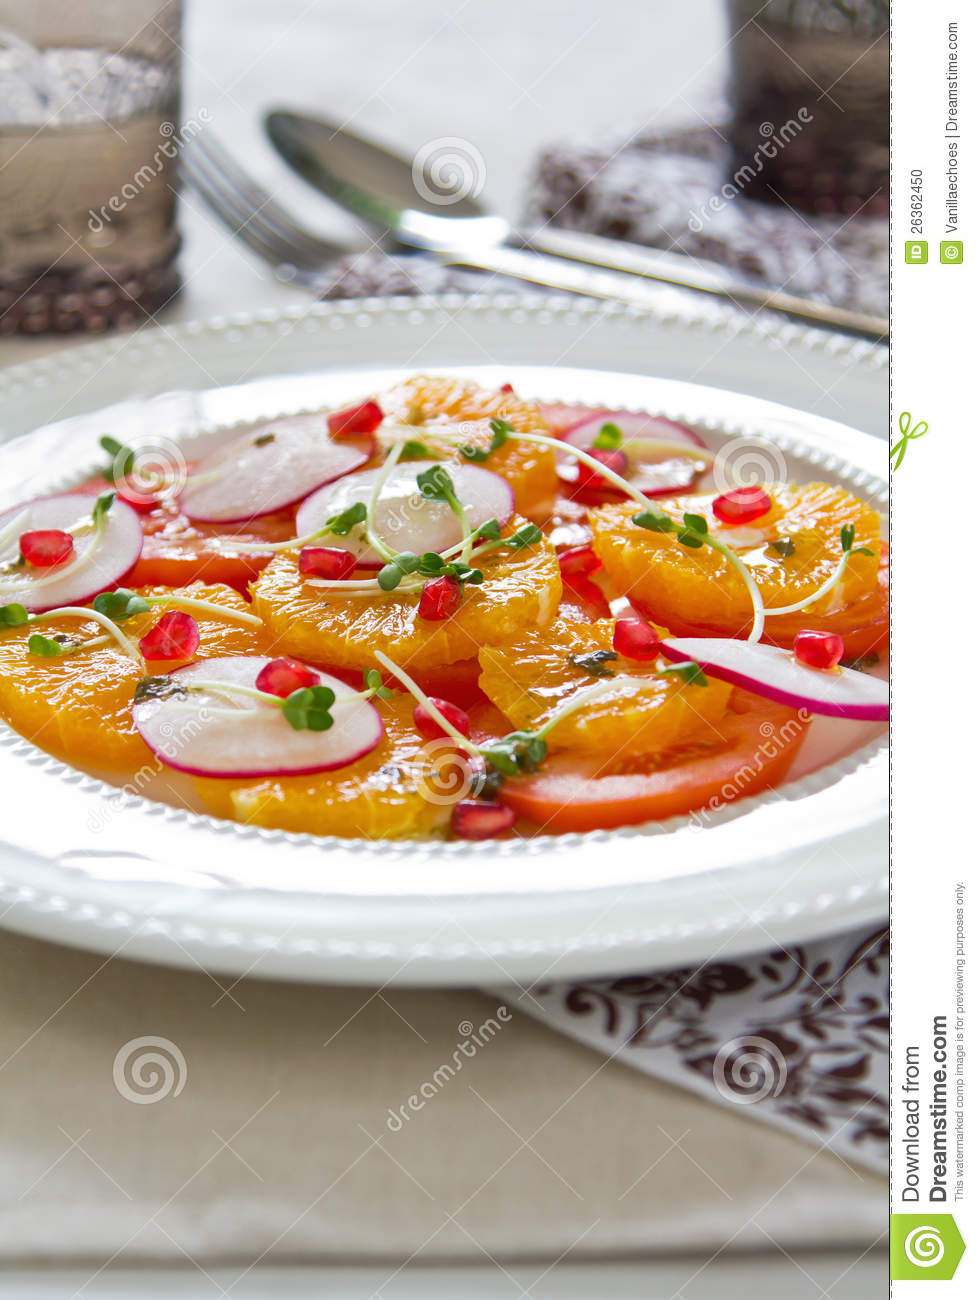 Orange,Pomegranate And Tomato Salad Stock Photo - Image: 26362450